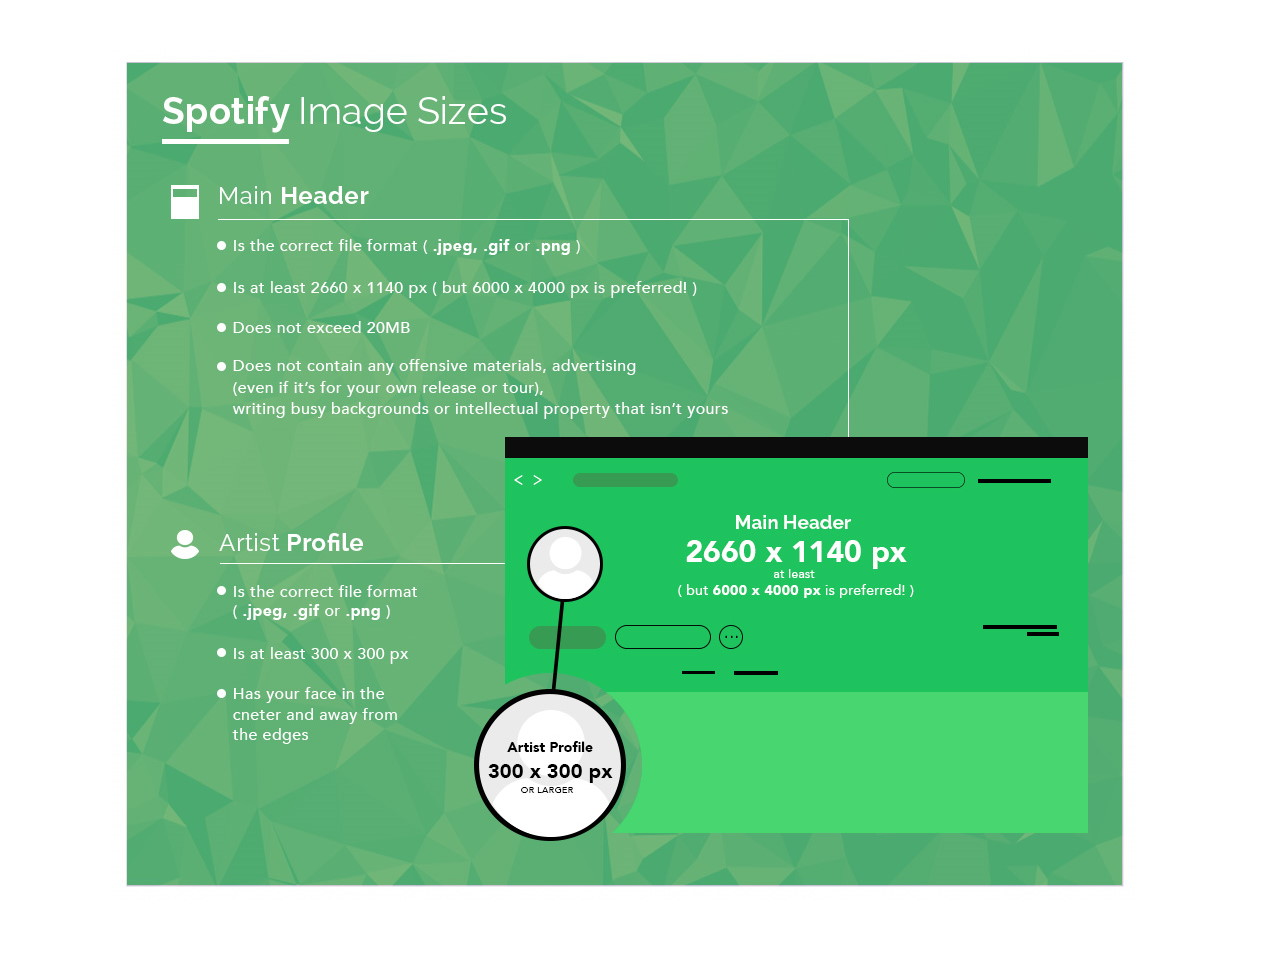 spotify artwork image guide